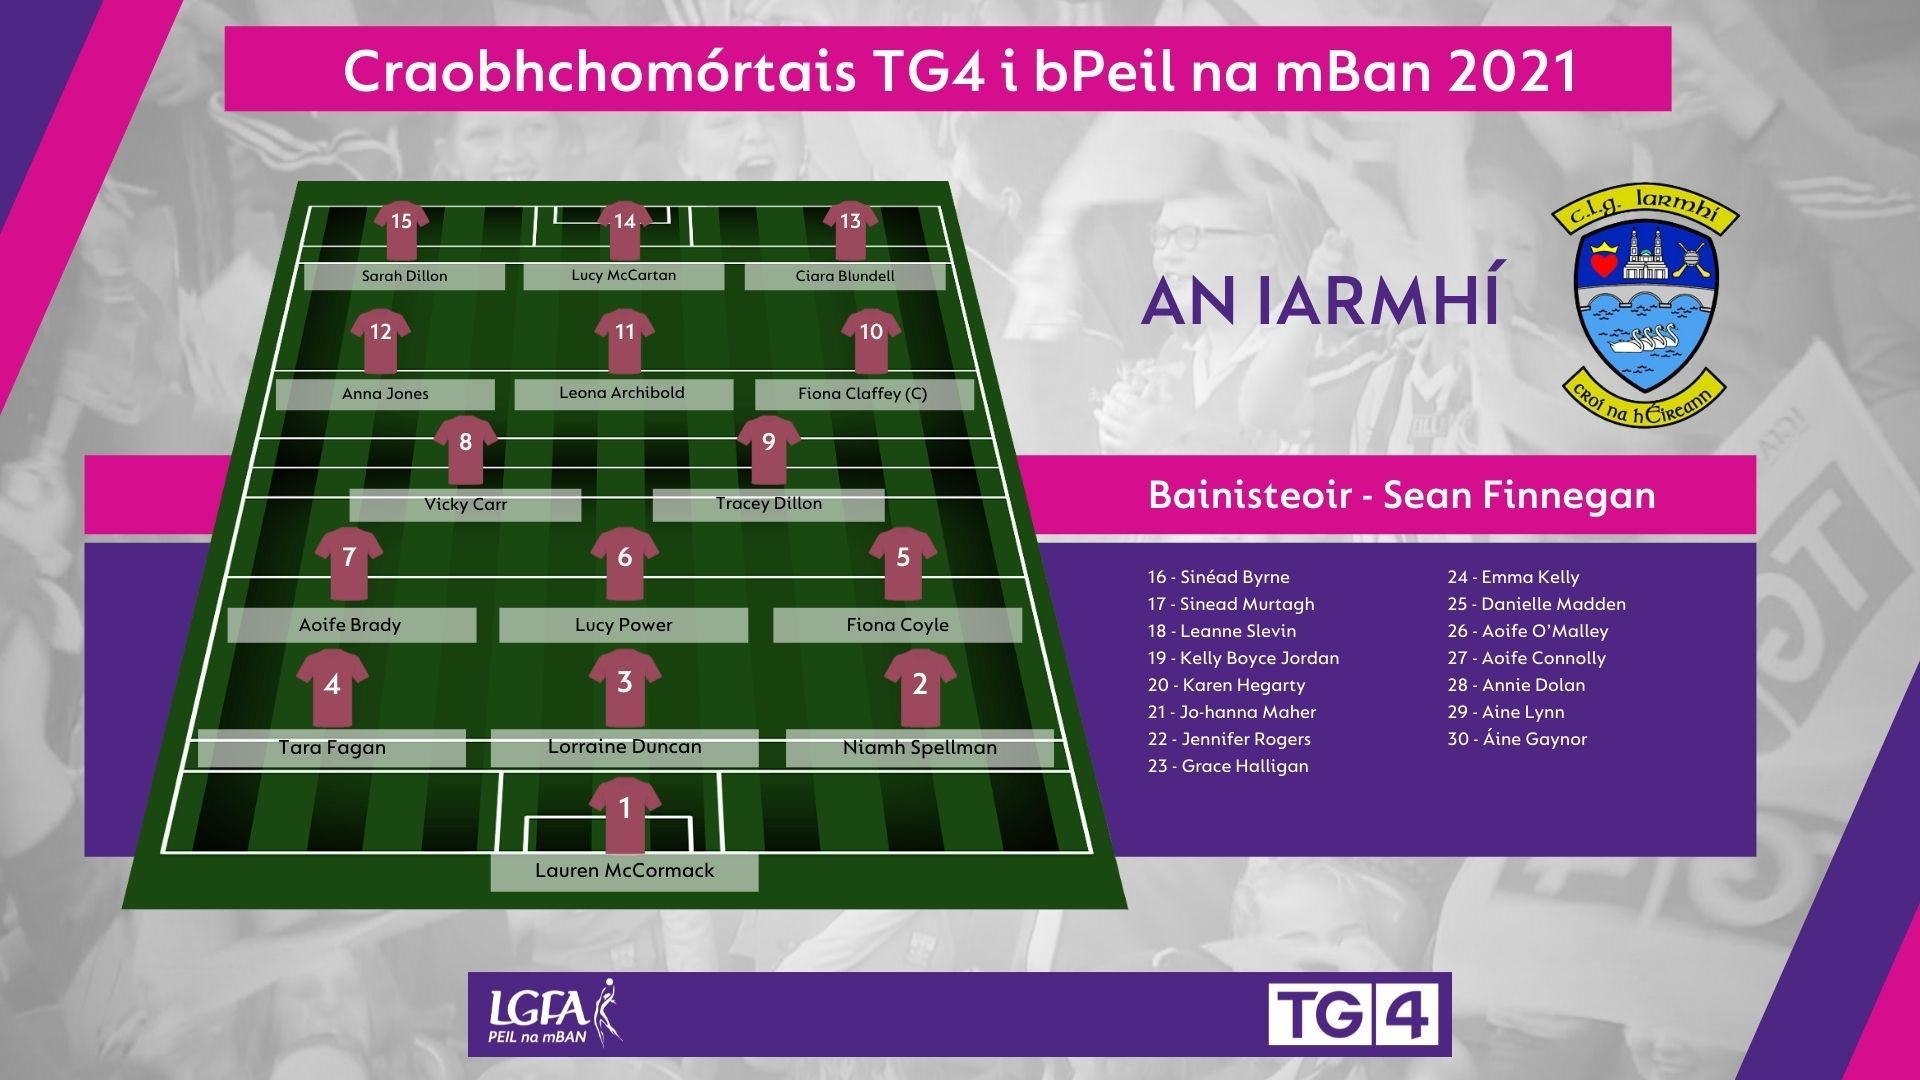 Image of Westmeath team selection in the match programme for the 2021 TG4 All Ireland Ladies Football Championship finals on Sunday.